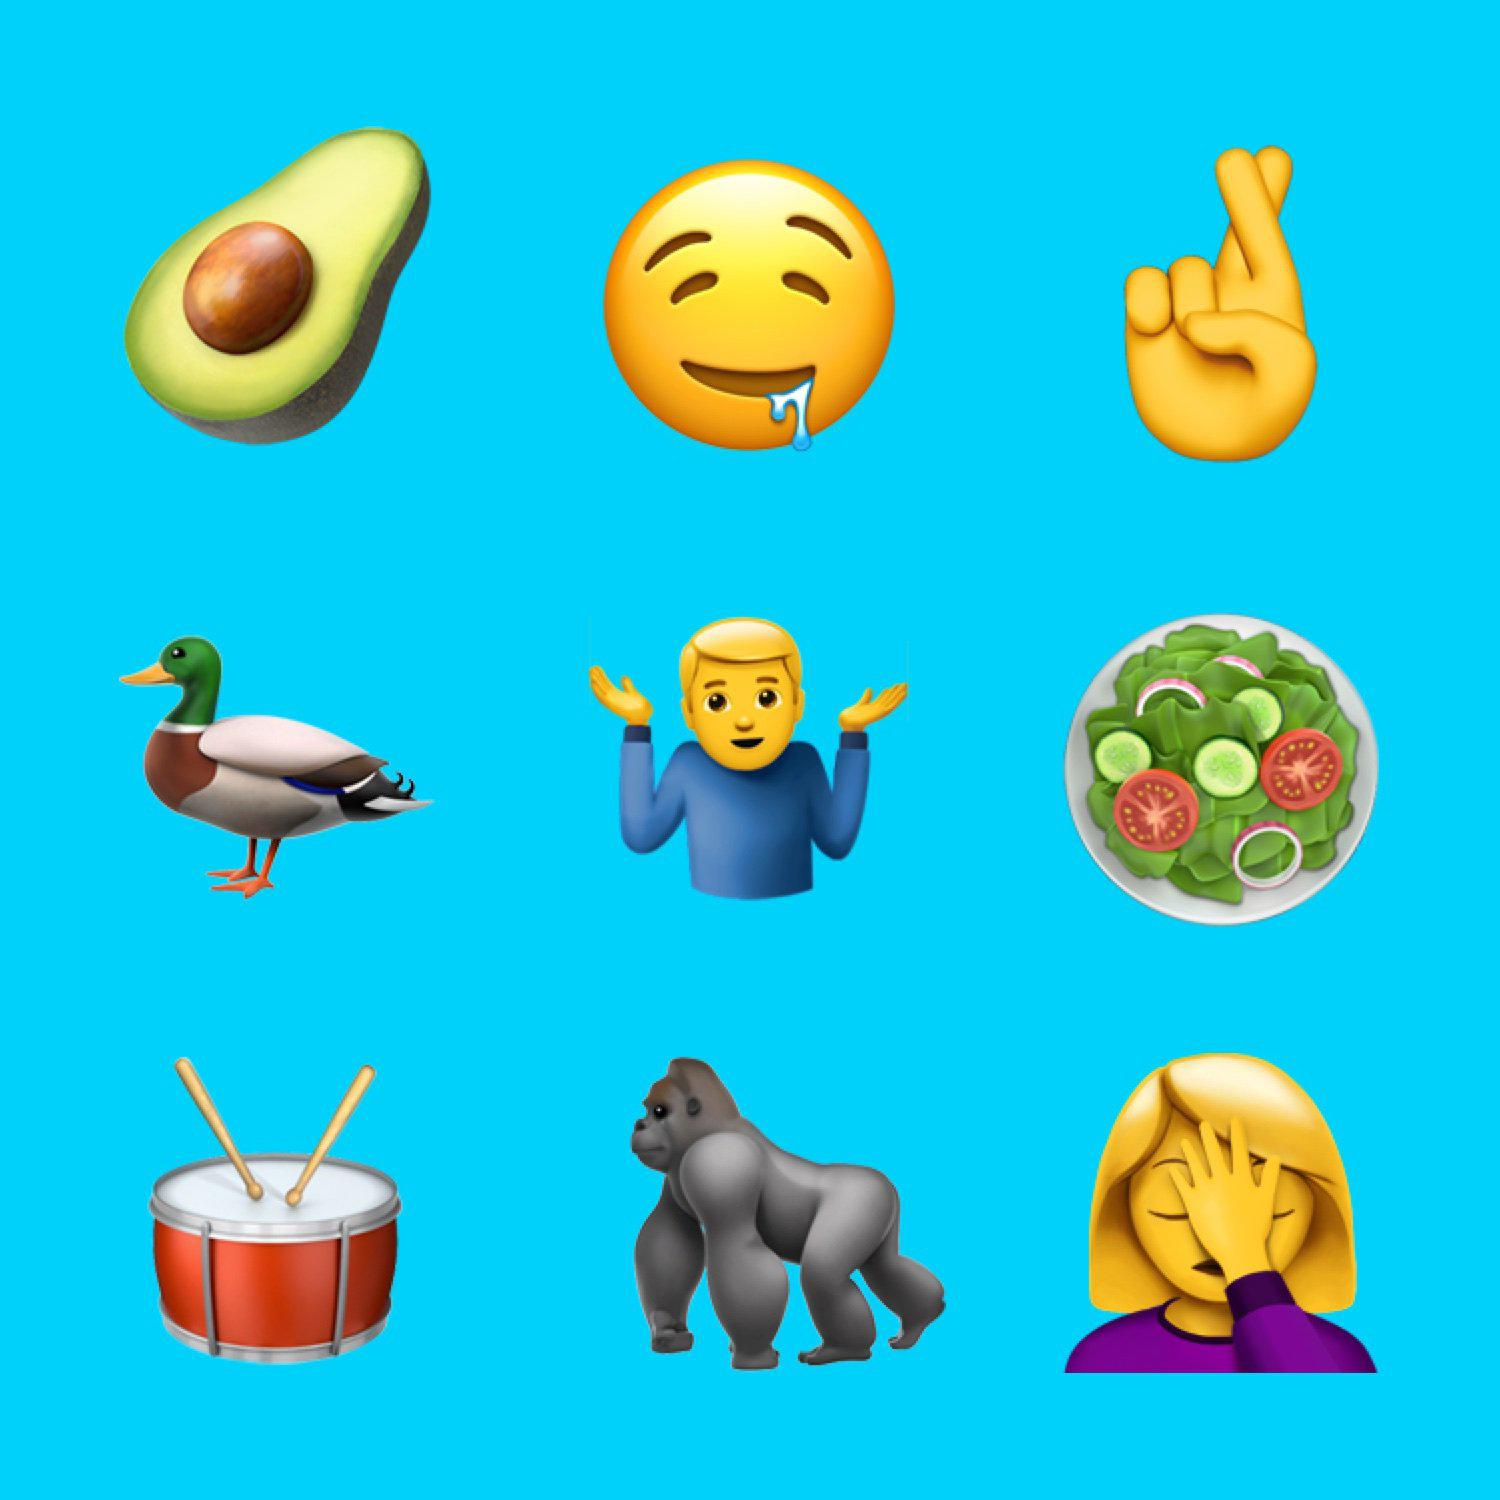 Check out the new emojis coming out with iOS 10.2!